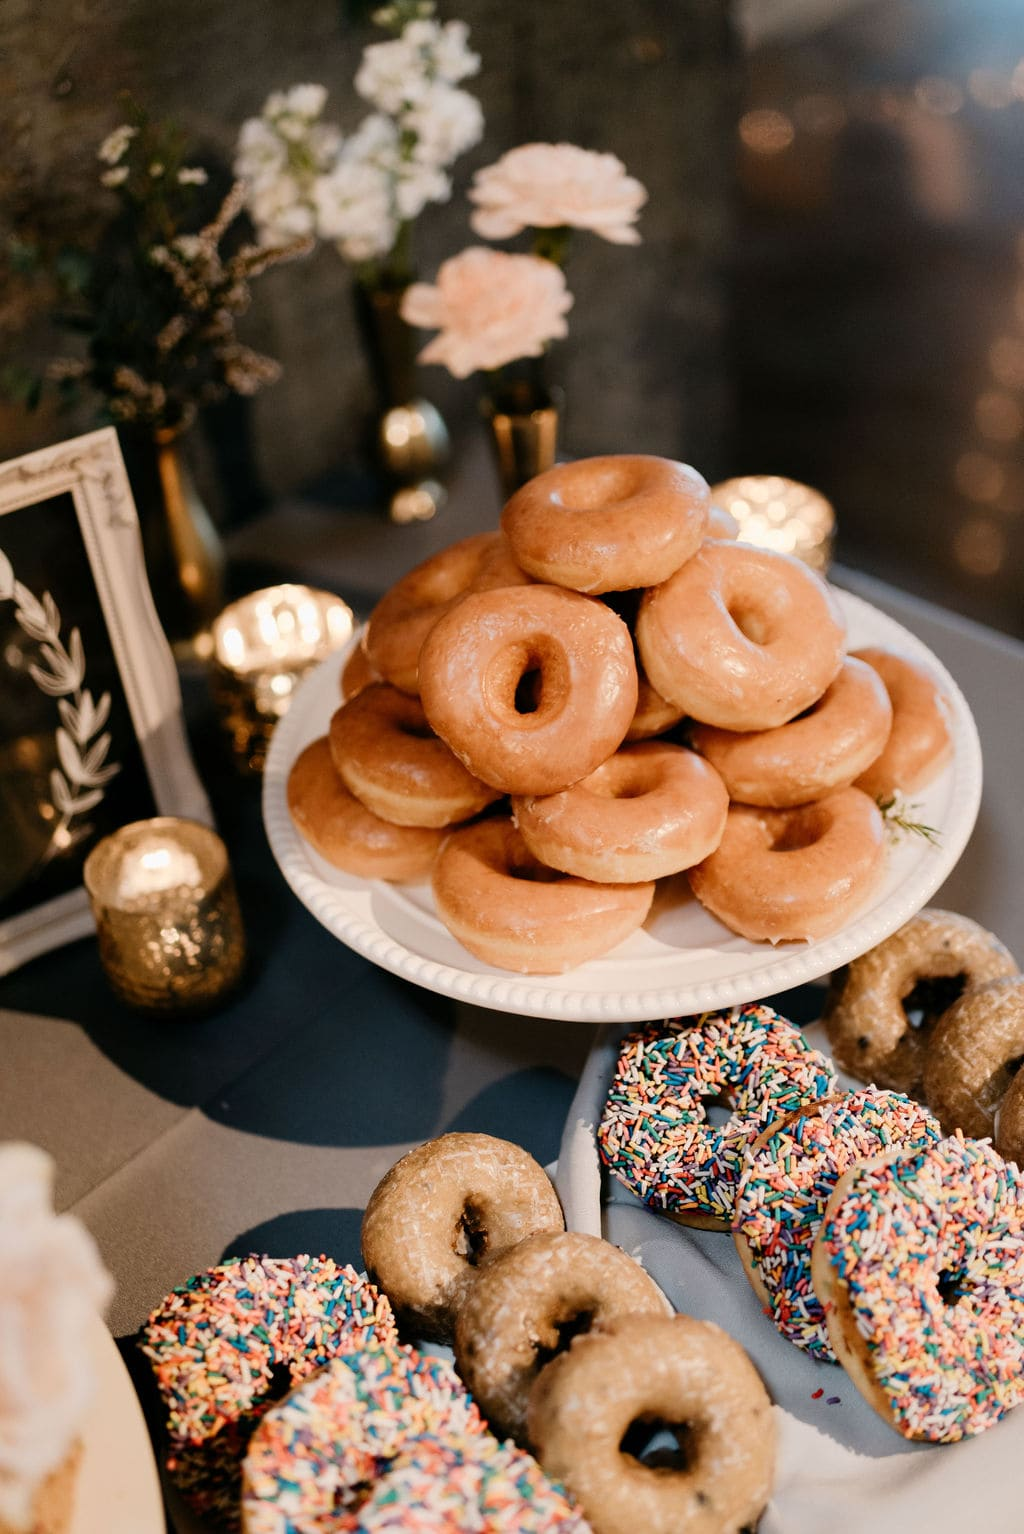 cookies and donuts as wedding desserts